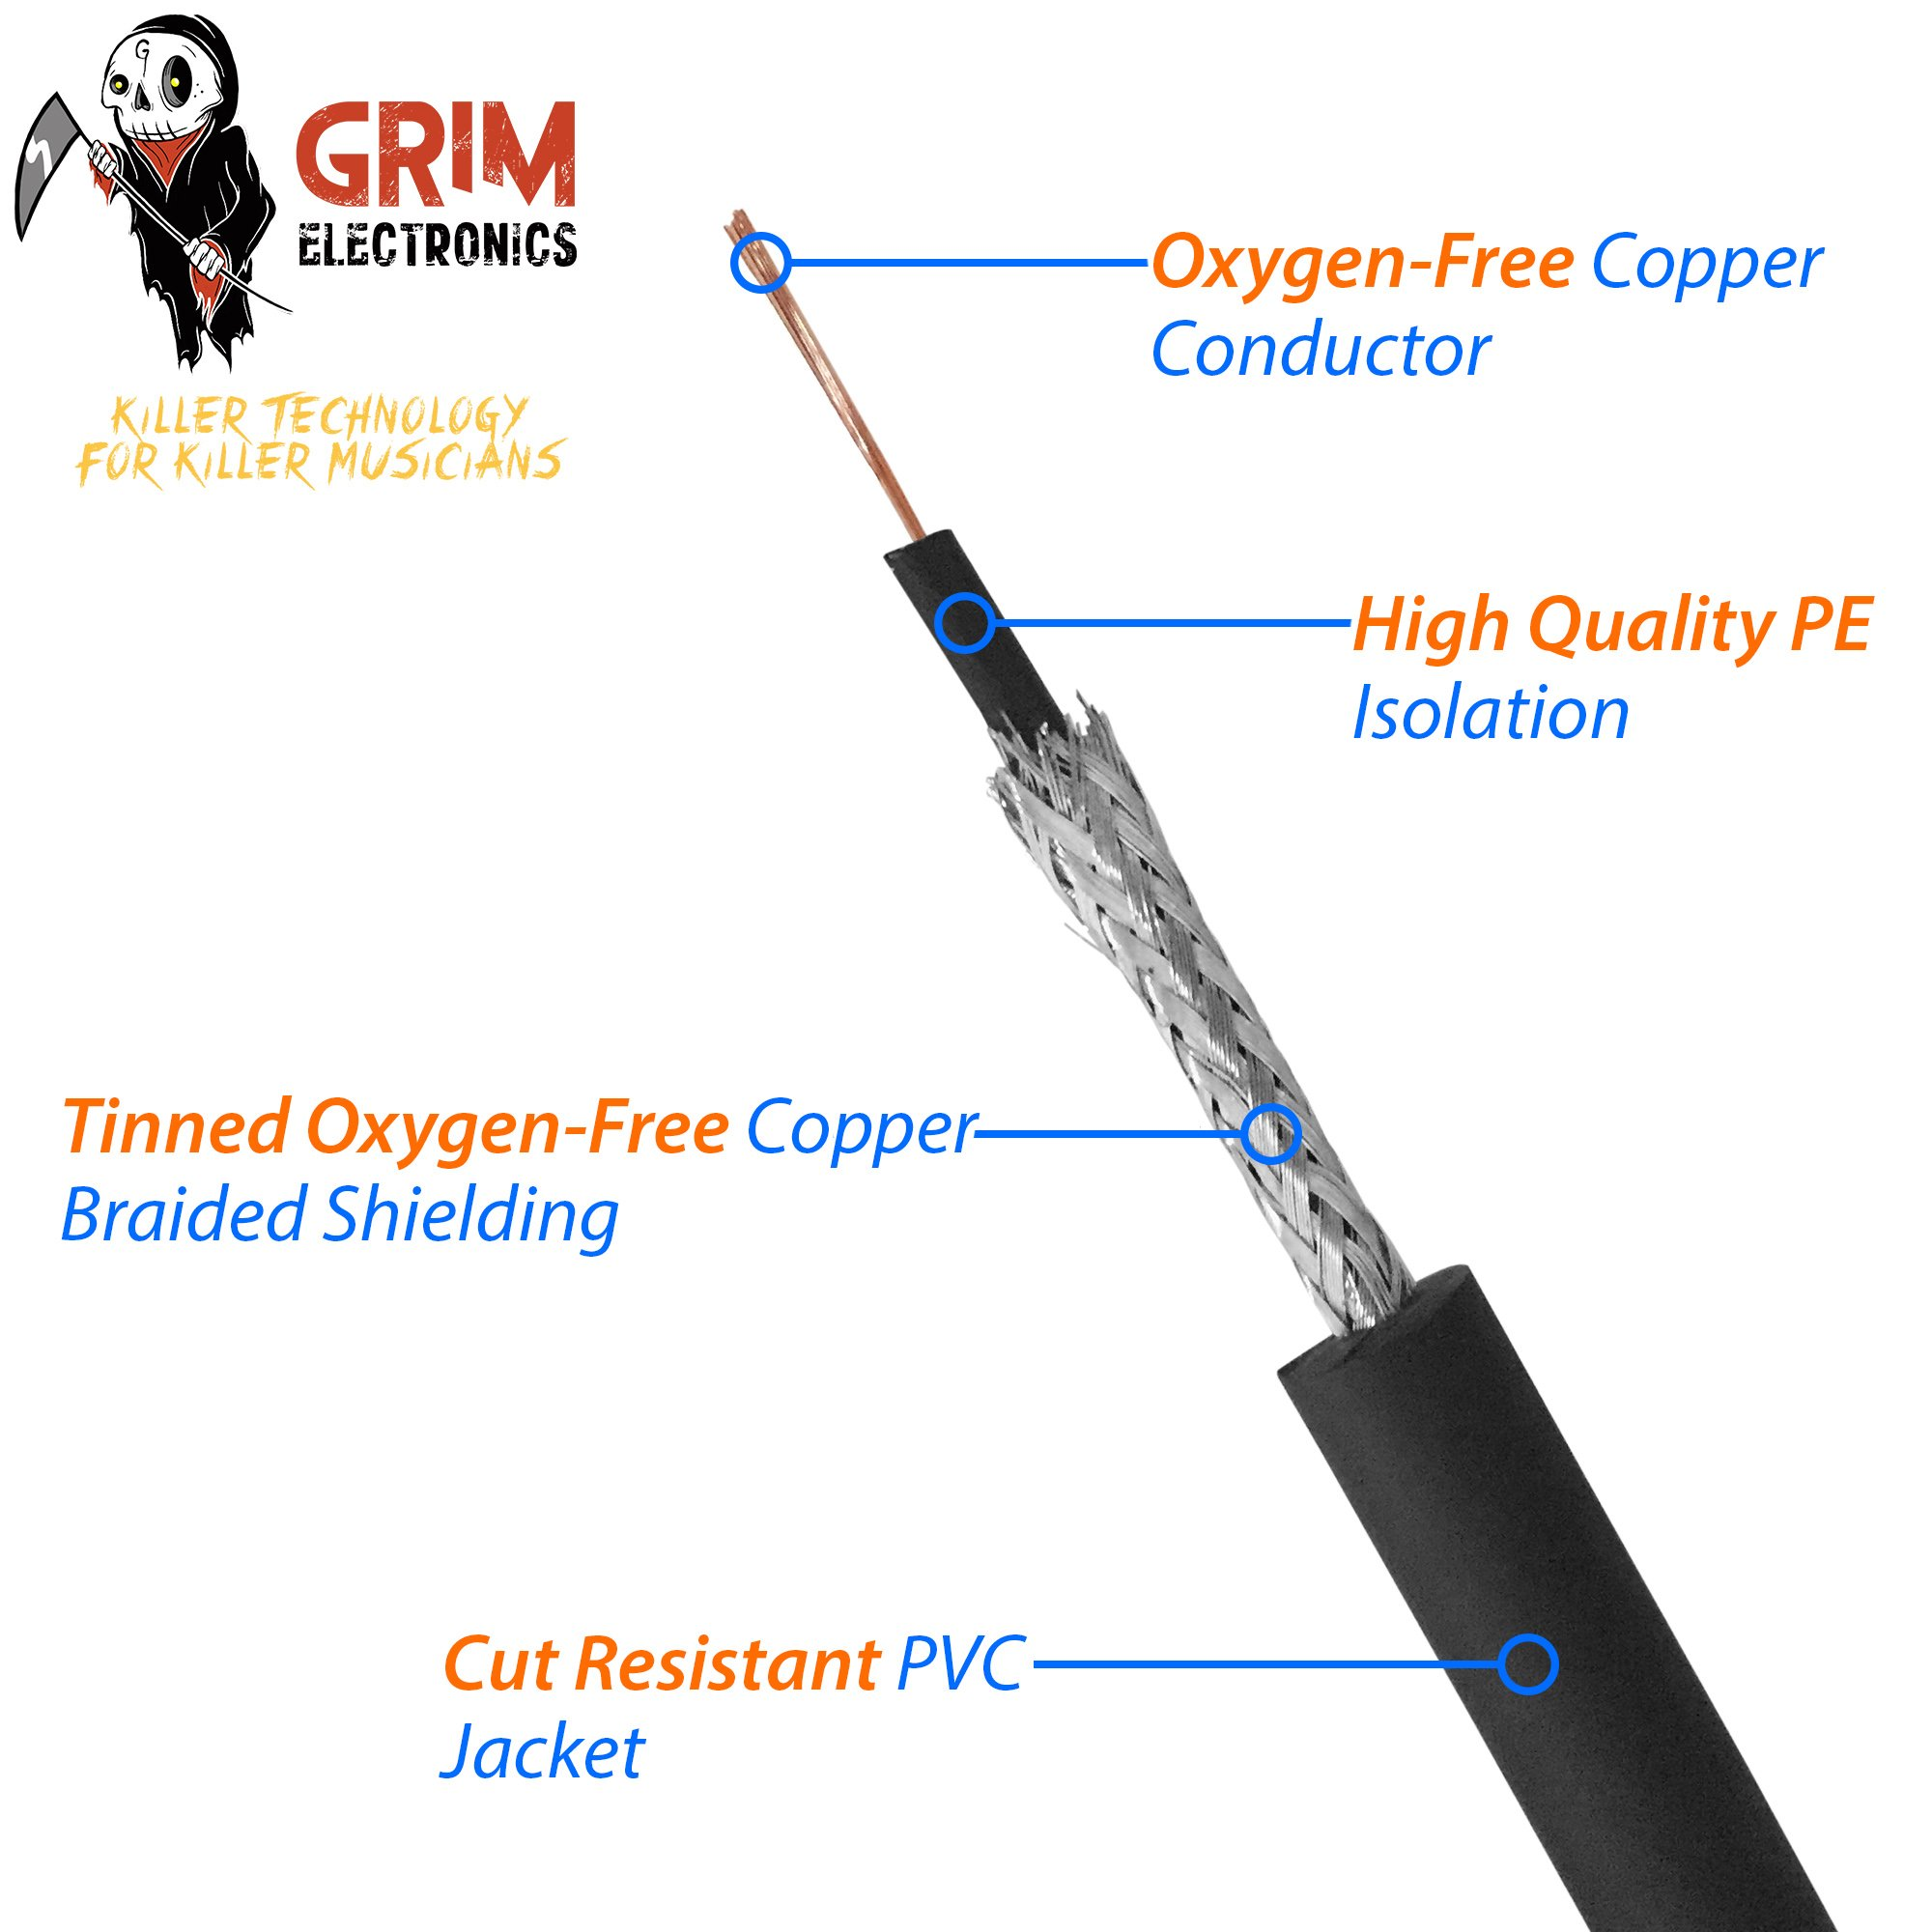 Grim Electronics Guitar Cable 10 ft. Premium Durable Instrument Cable For Guitar, Bass, Keyboard, Ukulele, Recording, Performance, Amp Cord & More - Professional 1/4 Inch 24kt Gold Connectors by Grim Electronics (Image #5)